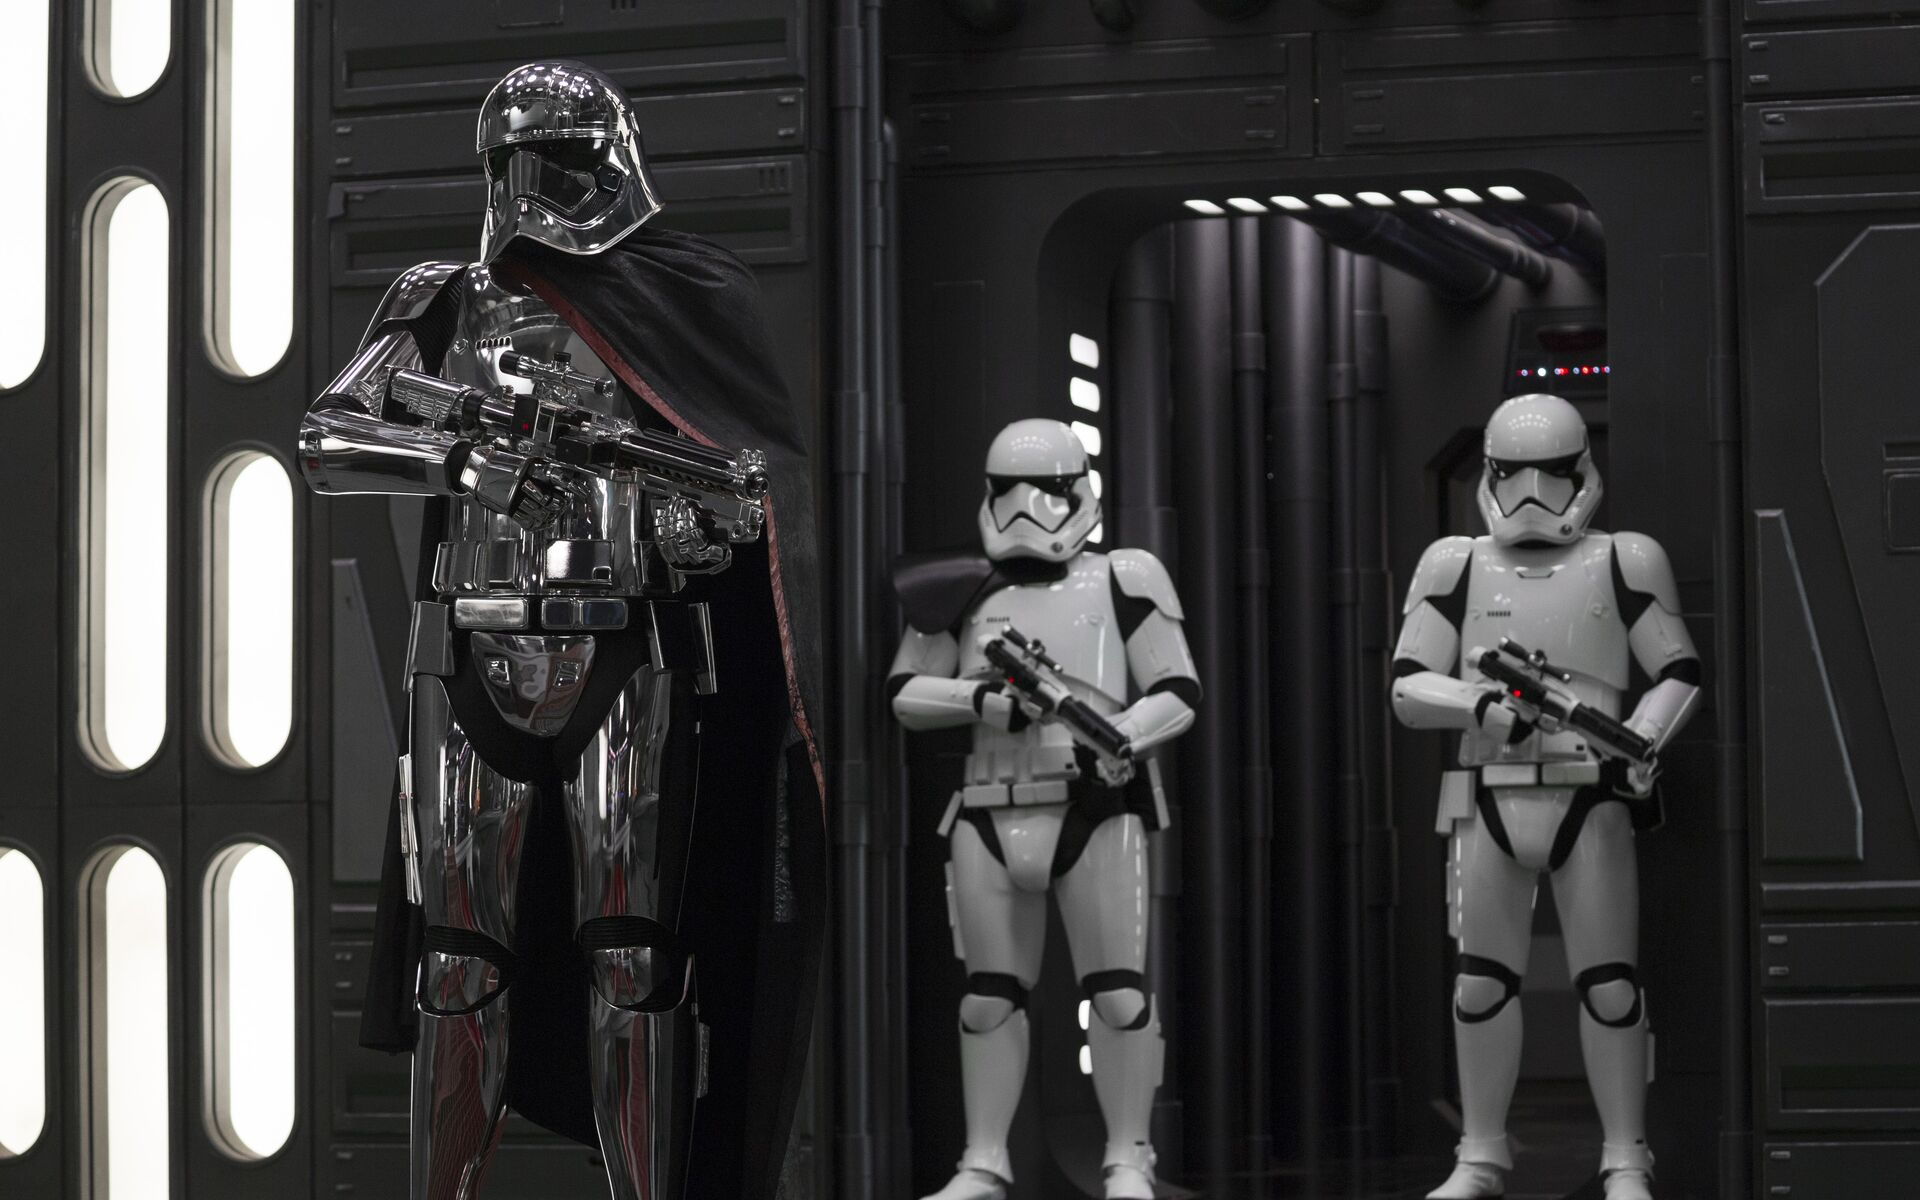 captain-phasma-in-star-wars-the-last-jedi-7i.jpg